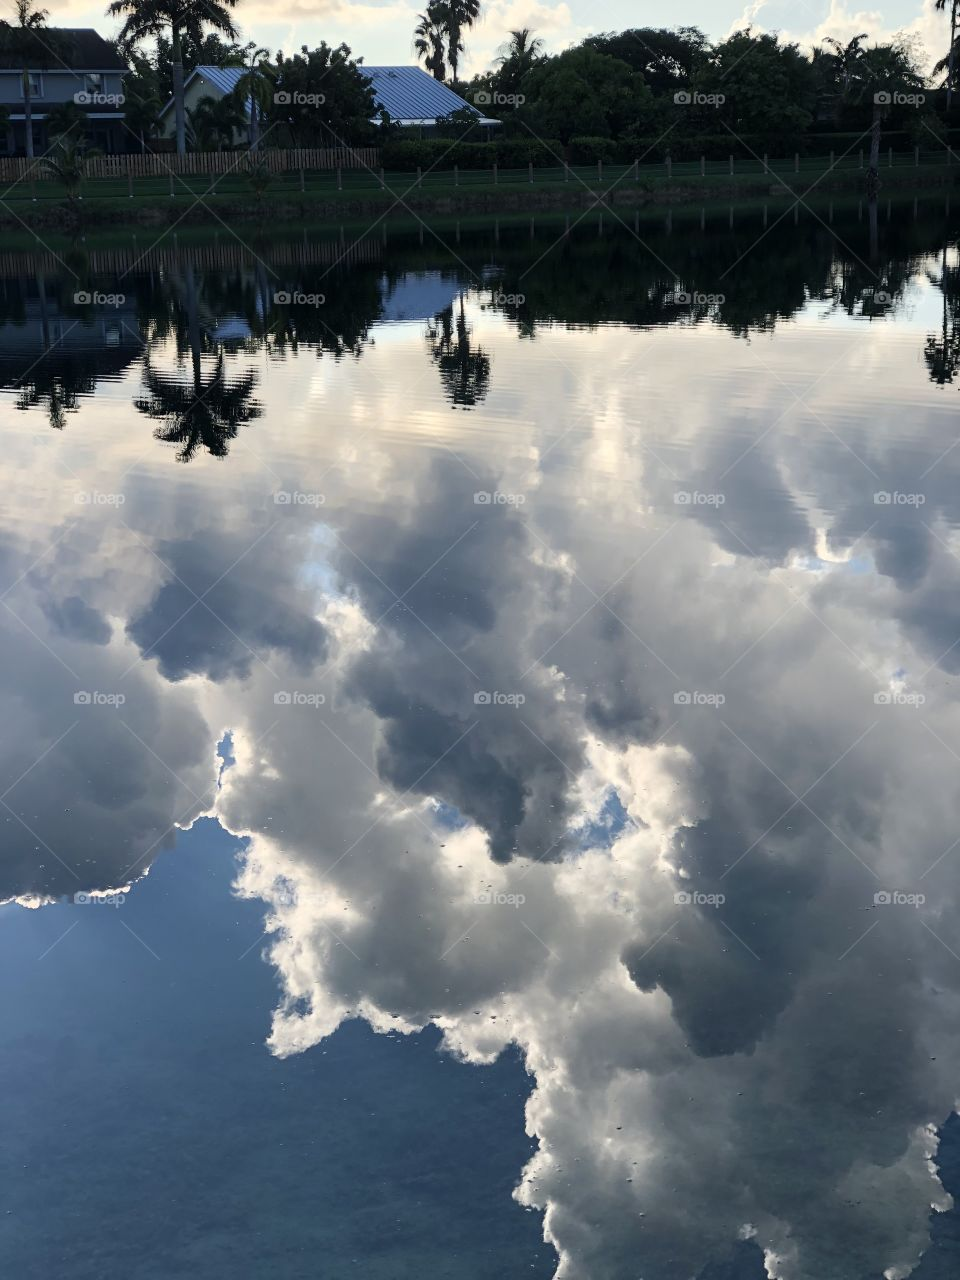 Topsy turvy world with clouds in the water and land above the skies.